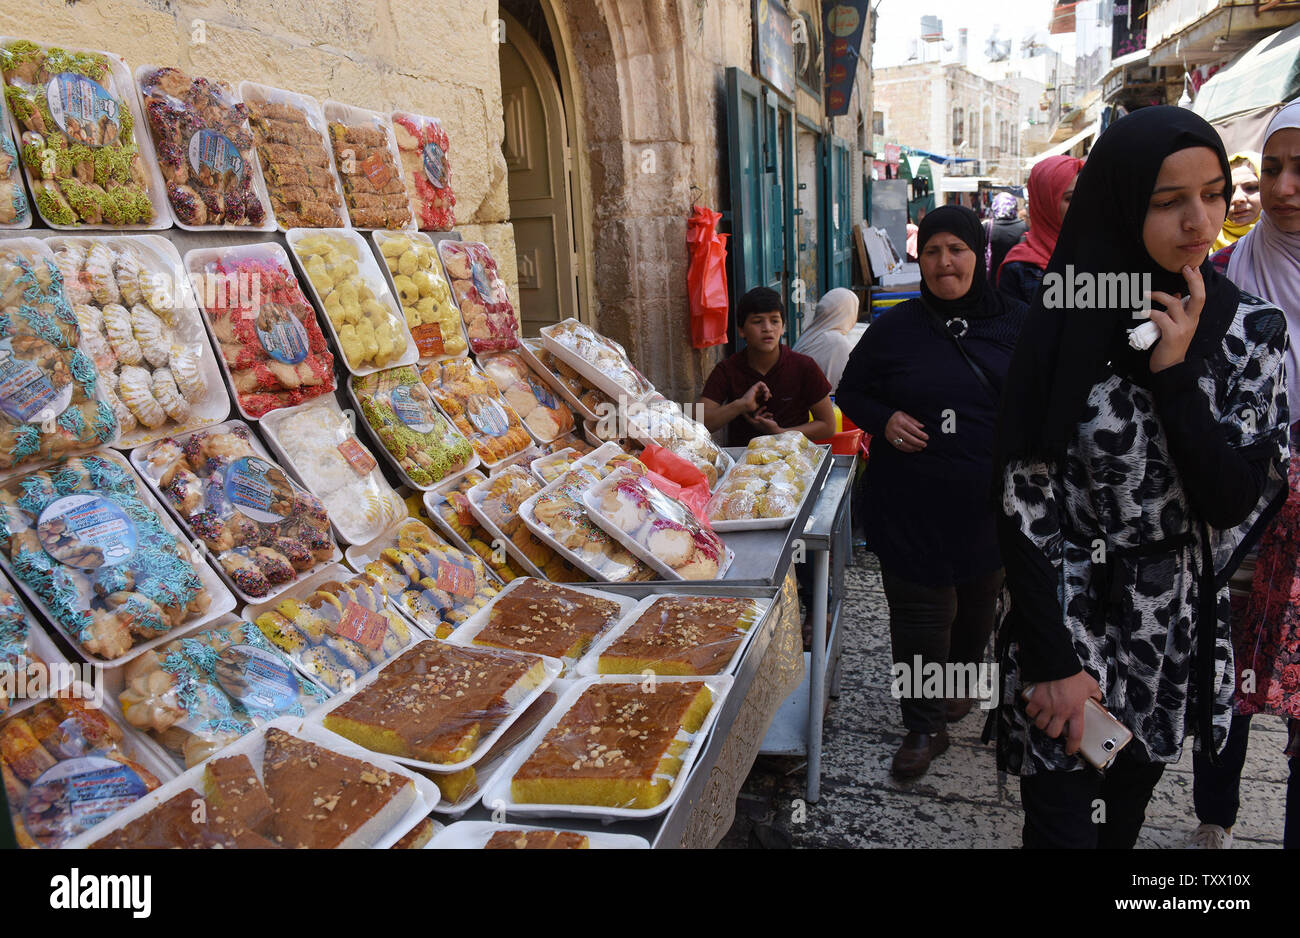 Palestinians walk past special sweets for the Islamic holiday of Eid al-Fitr, in the market in Bethlehem, West Bank, June 13, 2018. Muslims around the world will celebrate the three day holiday of  Eid al-Fitr ,which marks the end of the Muslim holy month of fasting Ramadan.  Photo by Debbie Hill/UPI - Stock Image